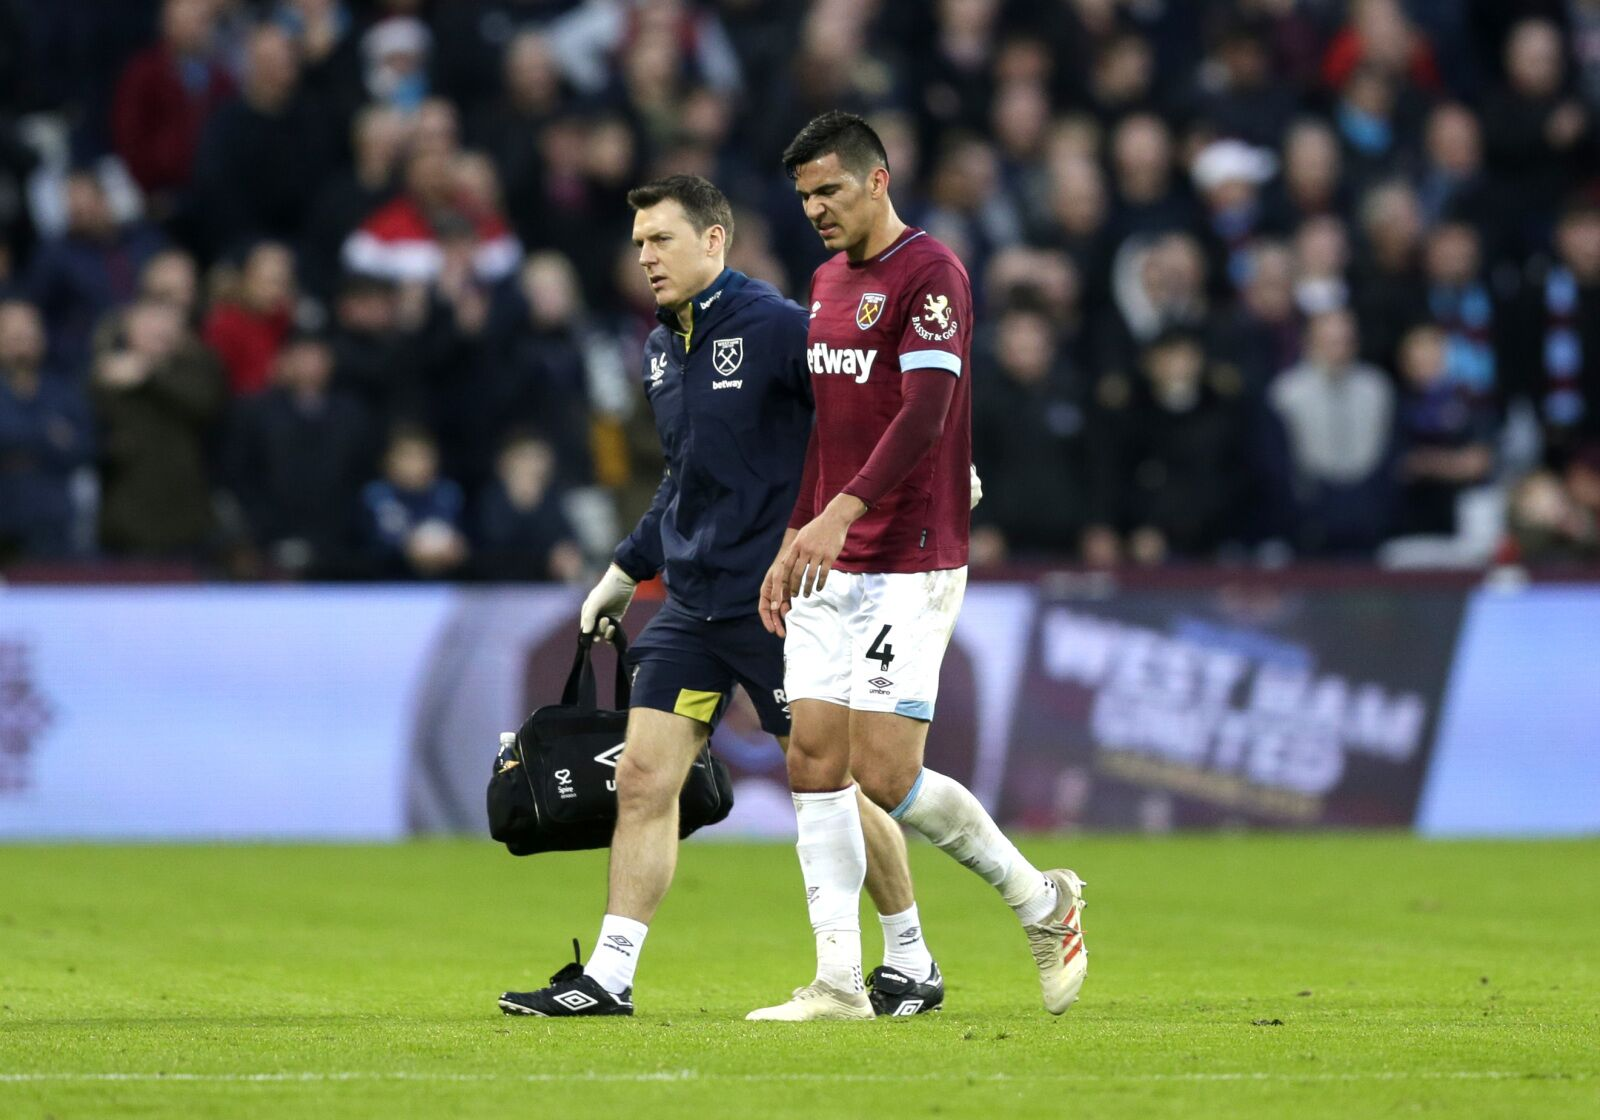 West Ham need another option at centre-back, and quickly